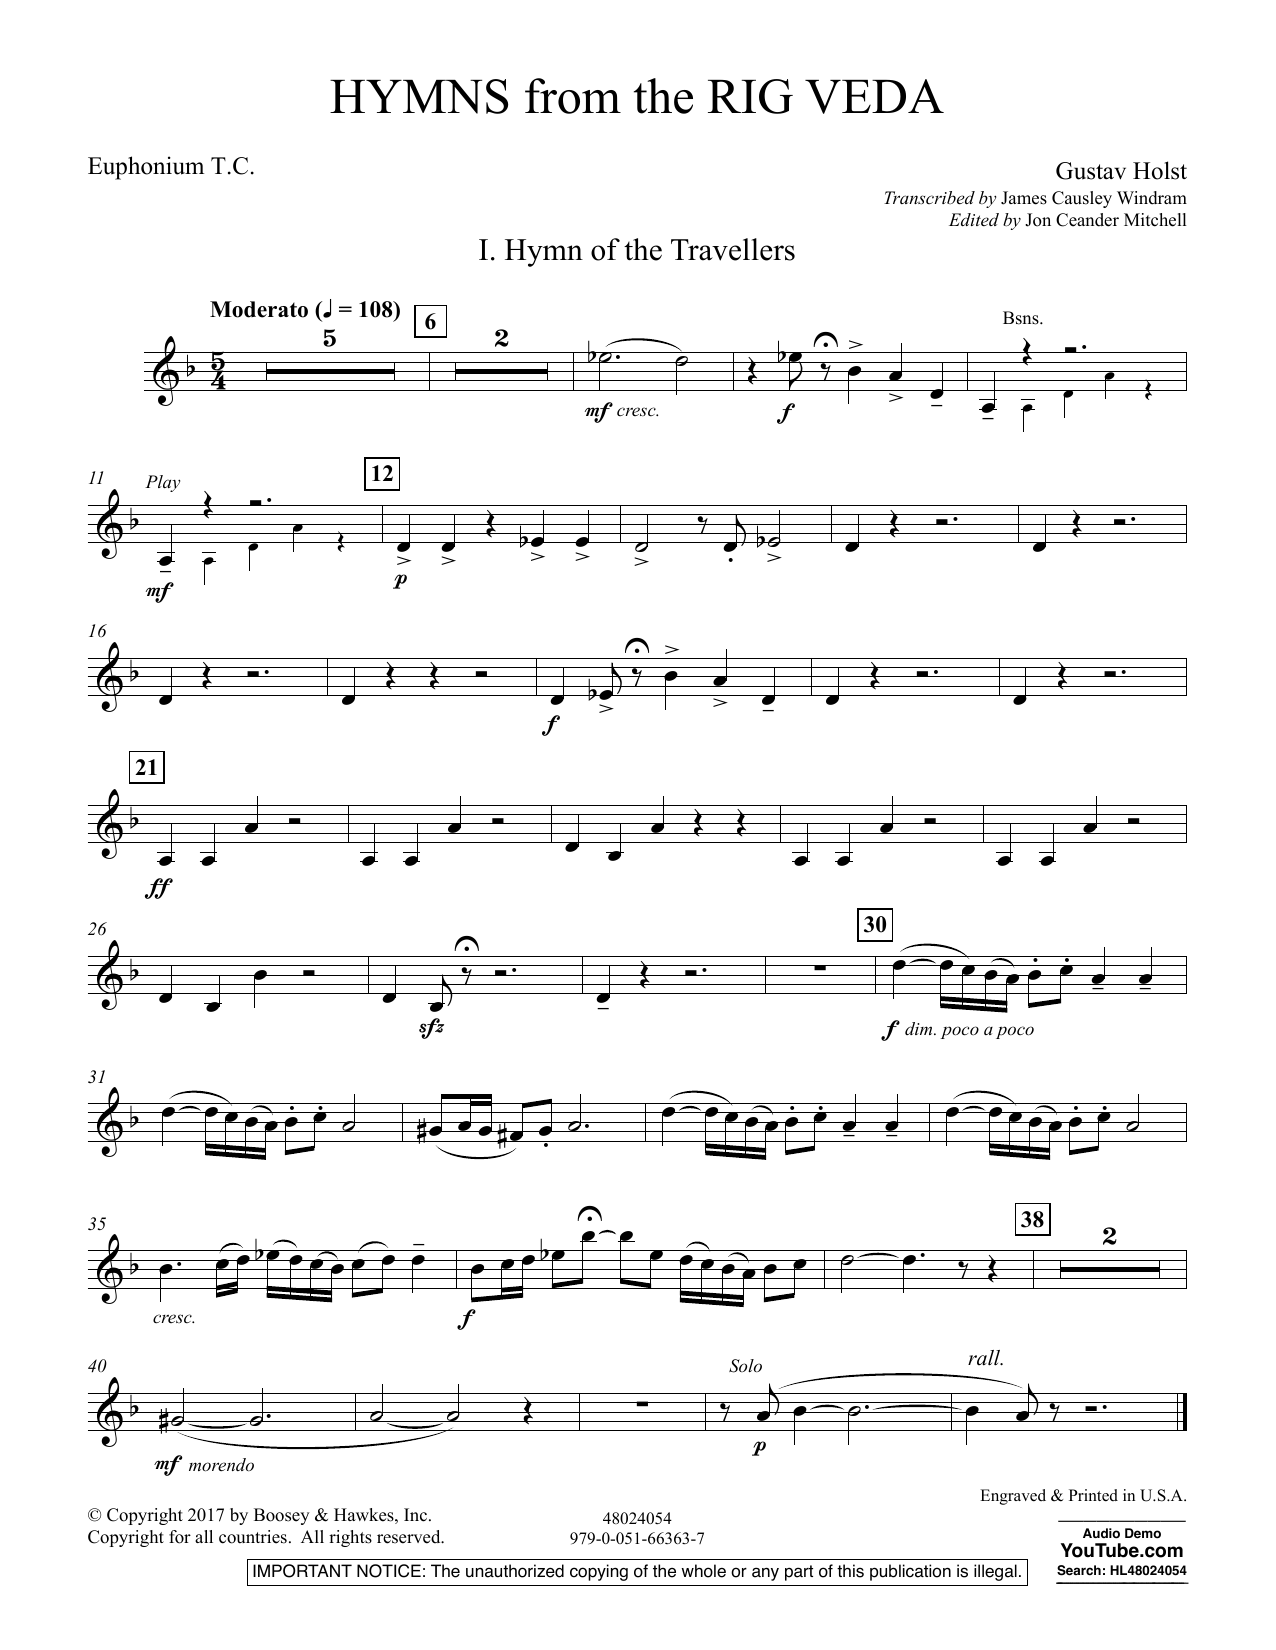 Hymns from the Rig Veda - Euphonium T.C. (Concert Band)